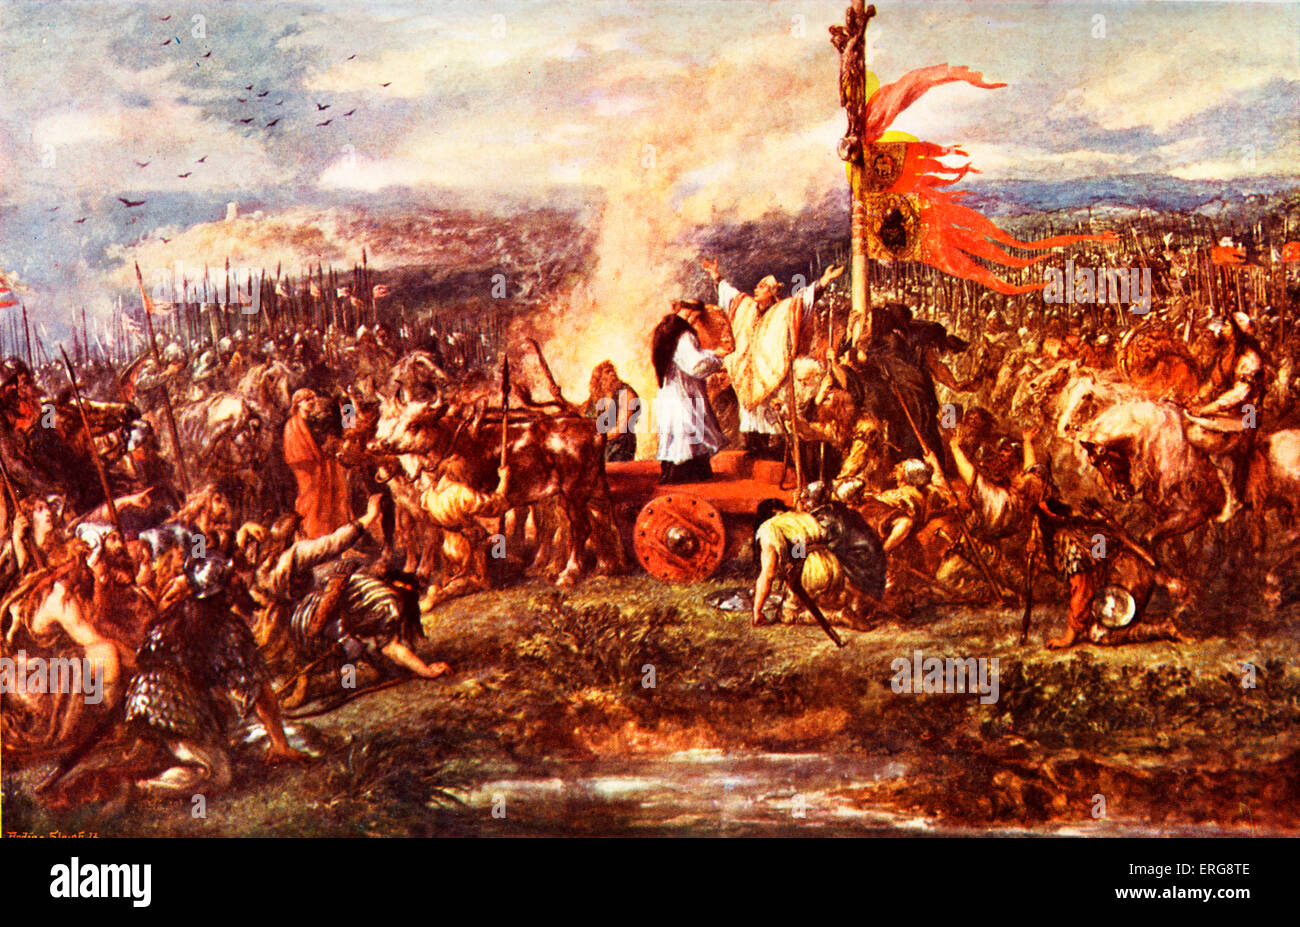 The Battle of the Standard, sometimes called the Battle of Northallerton, in which English forces repelled a Scottish - Stock Image